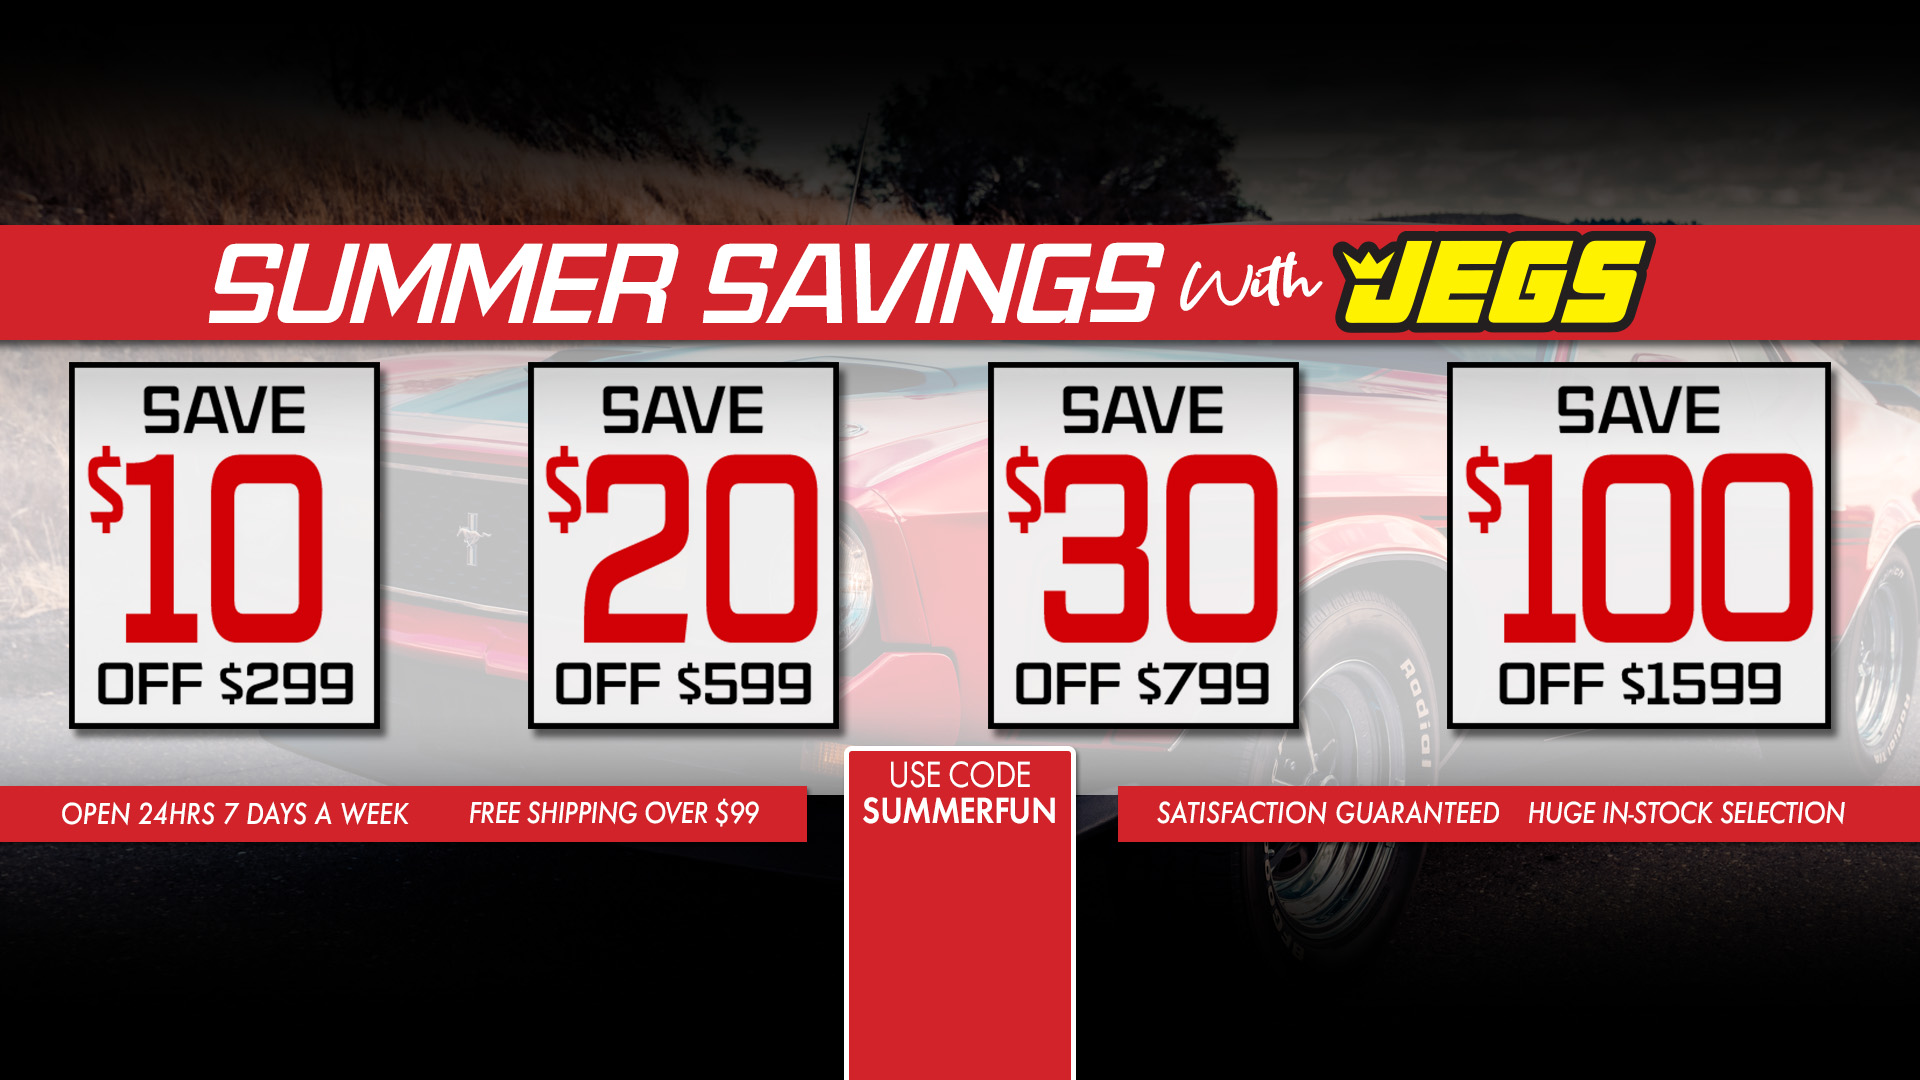 Save $10 off $299, $20 off $599, $30 off $799, $100 off $1,599 - Promo Code SUMMERFUN